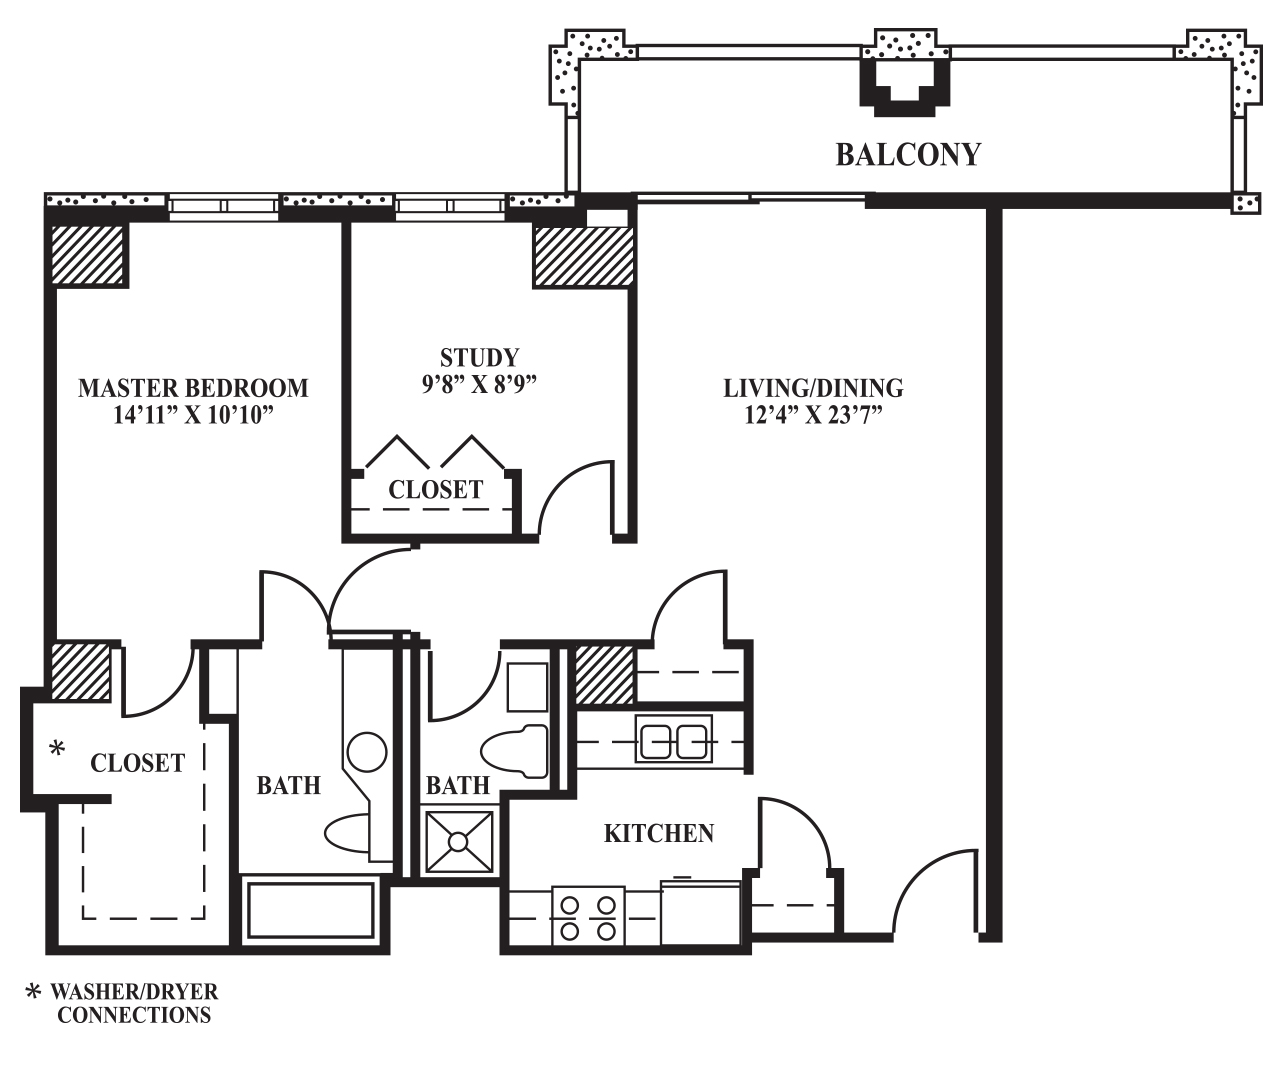 Kitchen Floor Plans With Dimensions 8 X 12 Yptzautc: 870 Sq Ft - The Towers On Park Lane